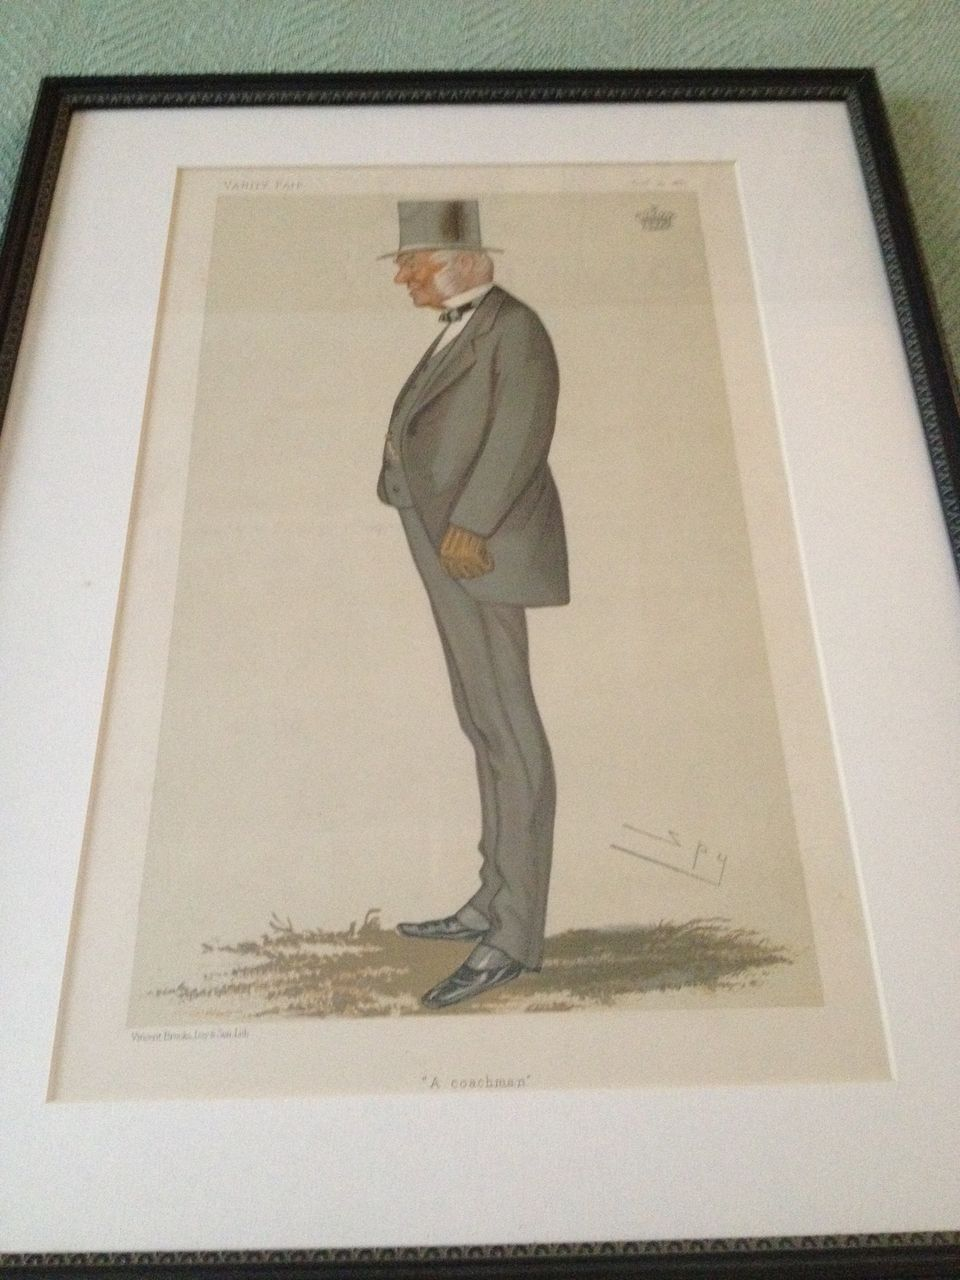 Antique Vanity Fair Print 10-22-1881 Original, Framed & Matted